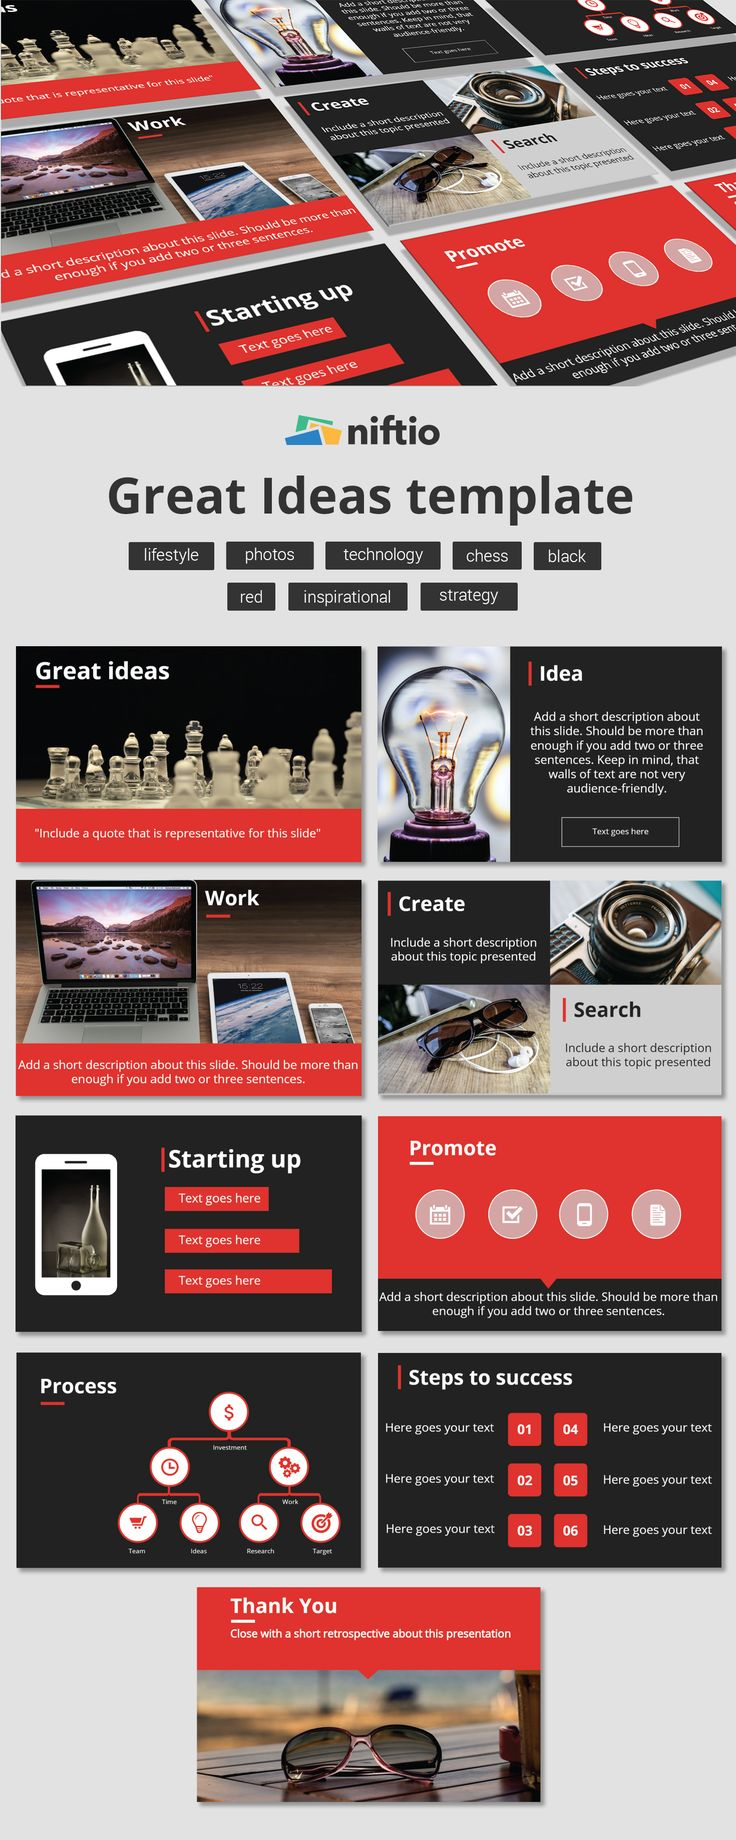 We all have Great Ideas. Let's share them with the world using this presentation template.  #work #create #promote #startup